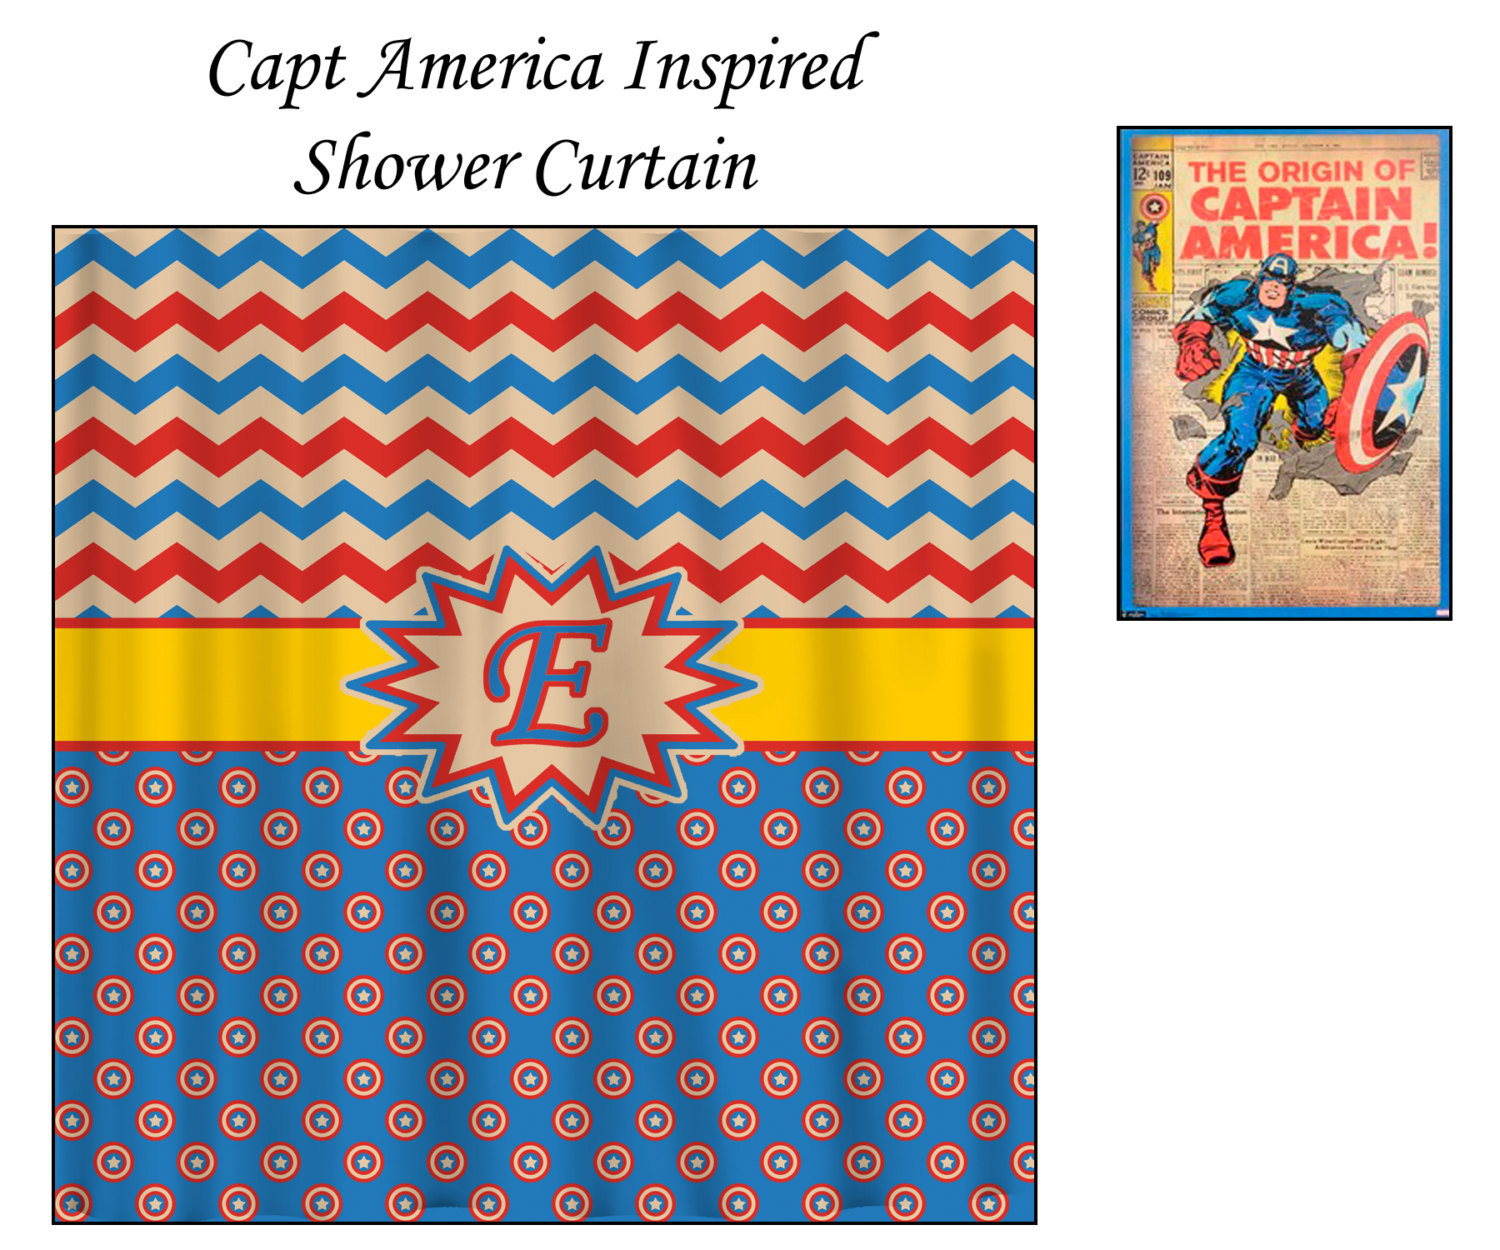 Personalized Shower Curtain - Capt America Inspired Theme- shown here Blue, Red, image 4